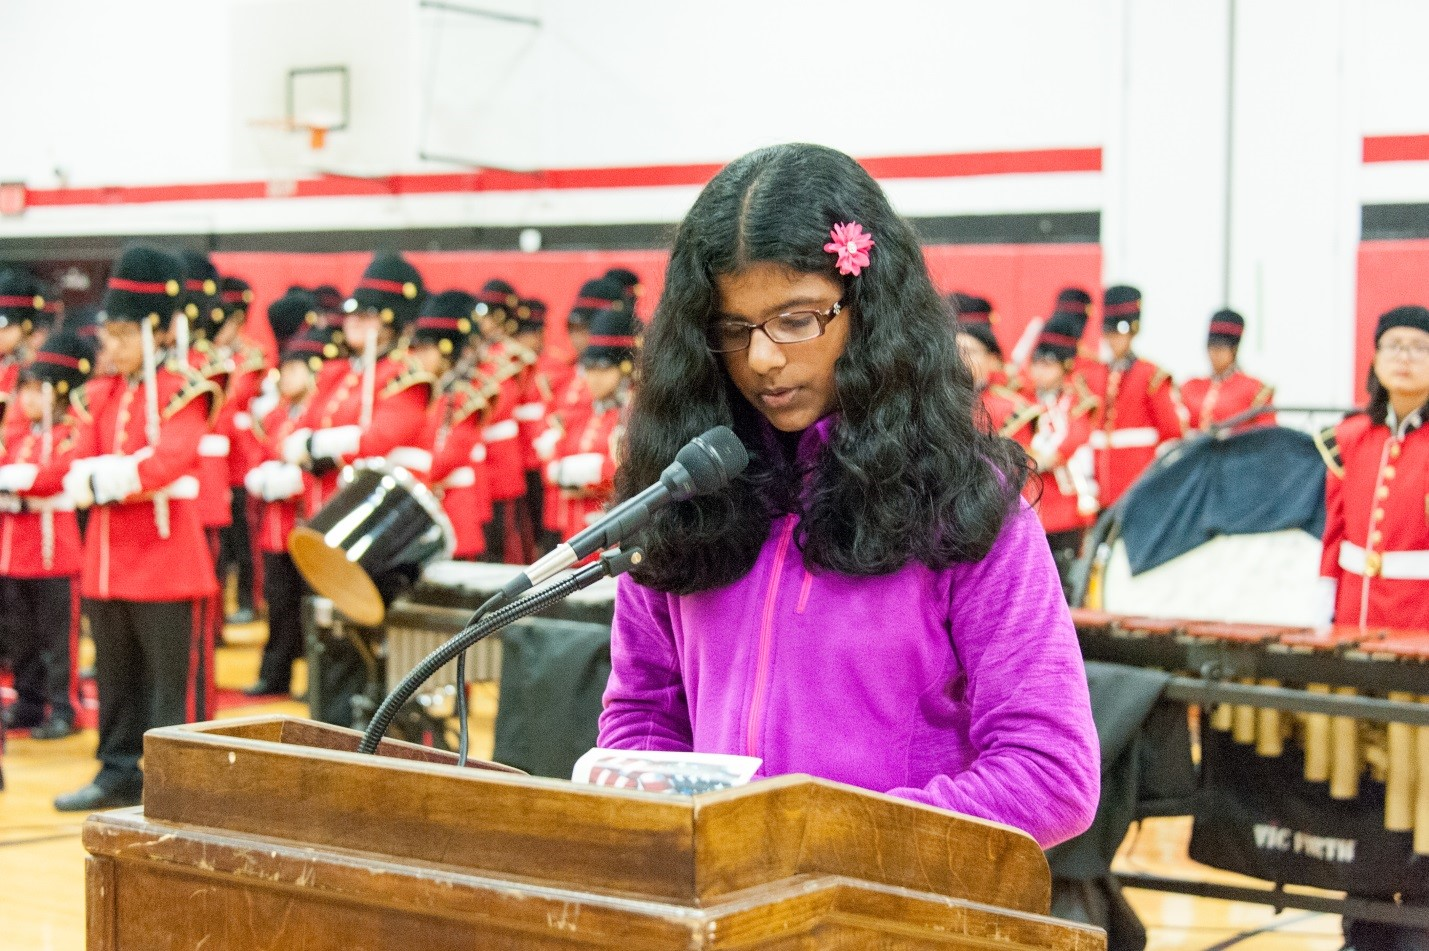 Bergenfield High School was ranked among the best in New Jersey.